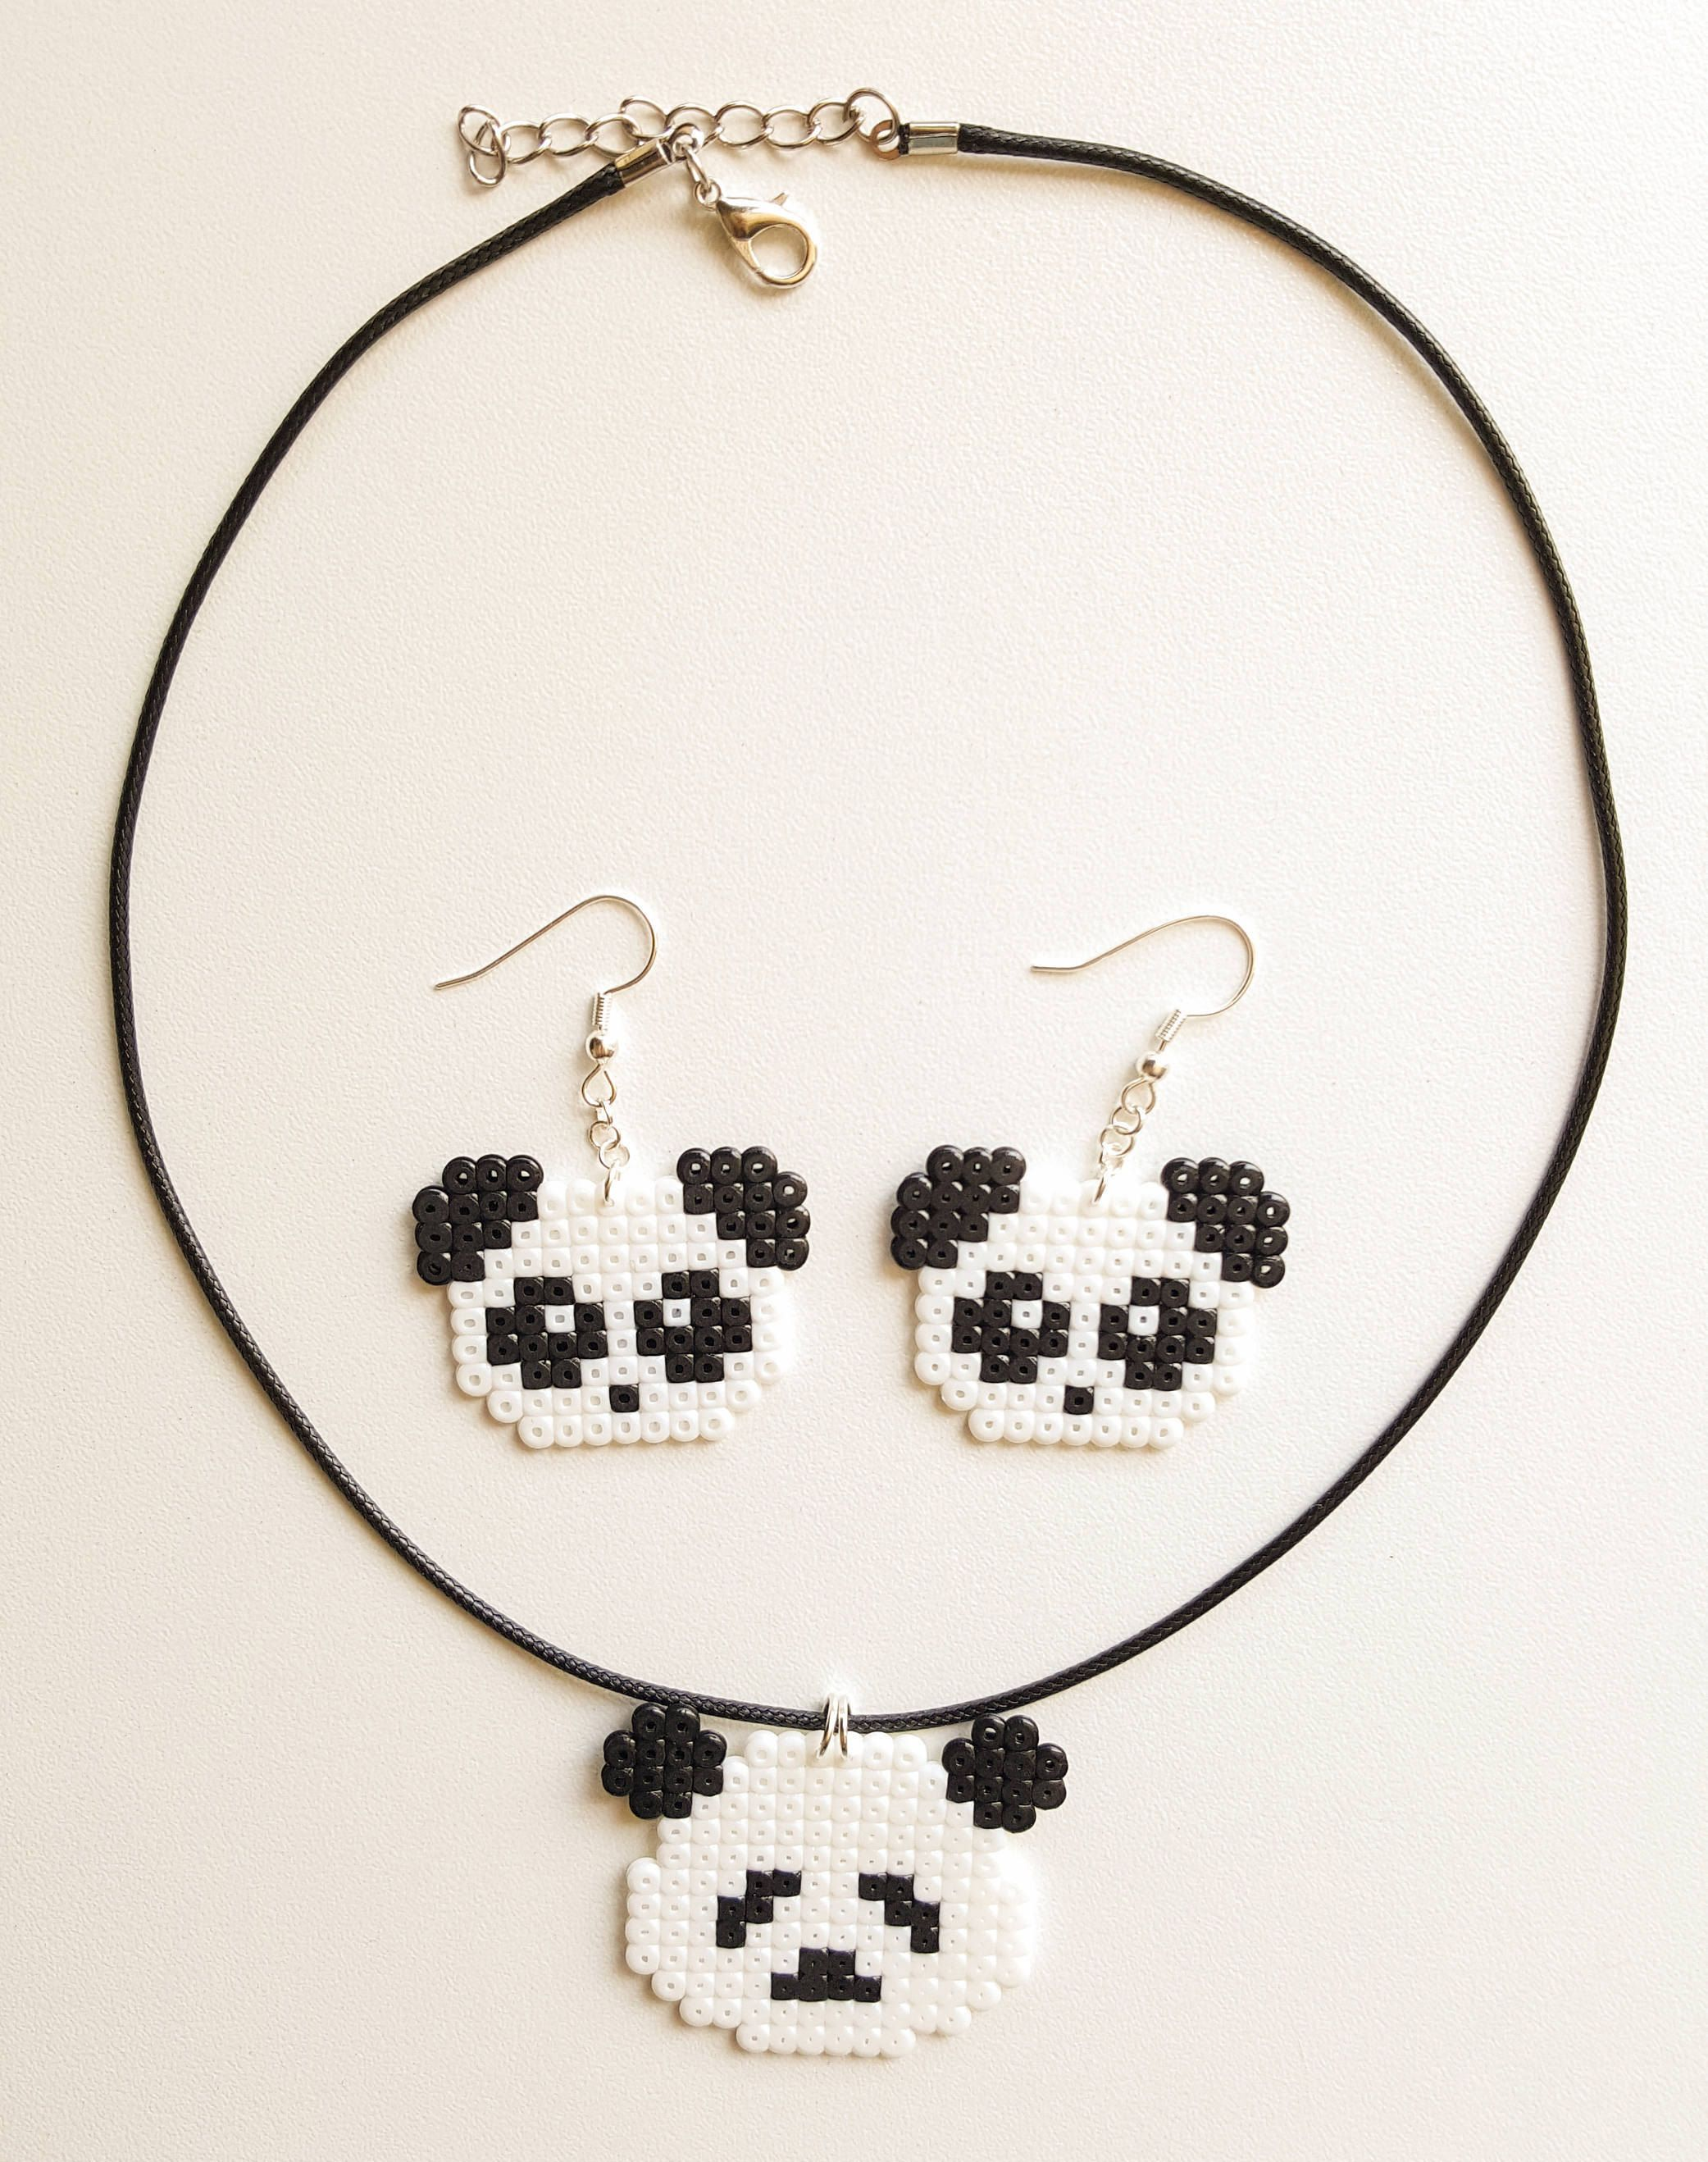 Cute Kawaii Panda Set Panda Earrings Necklace Pendant